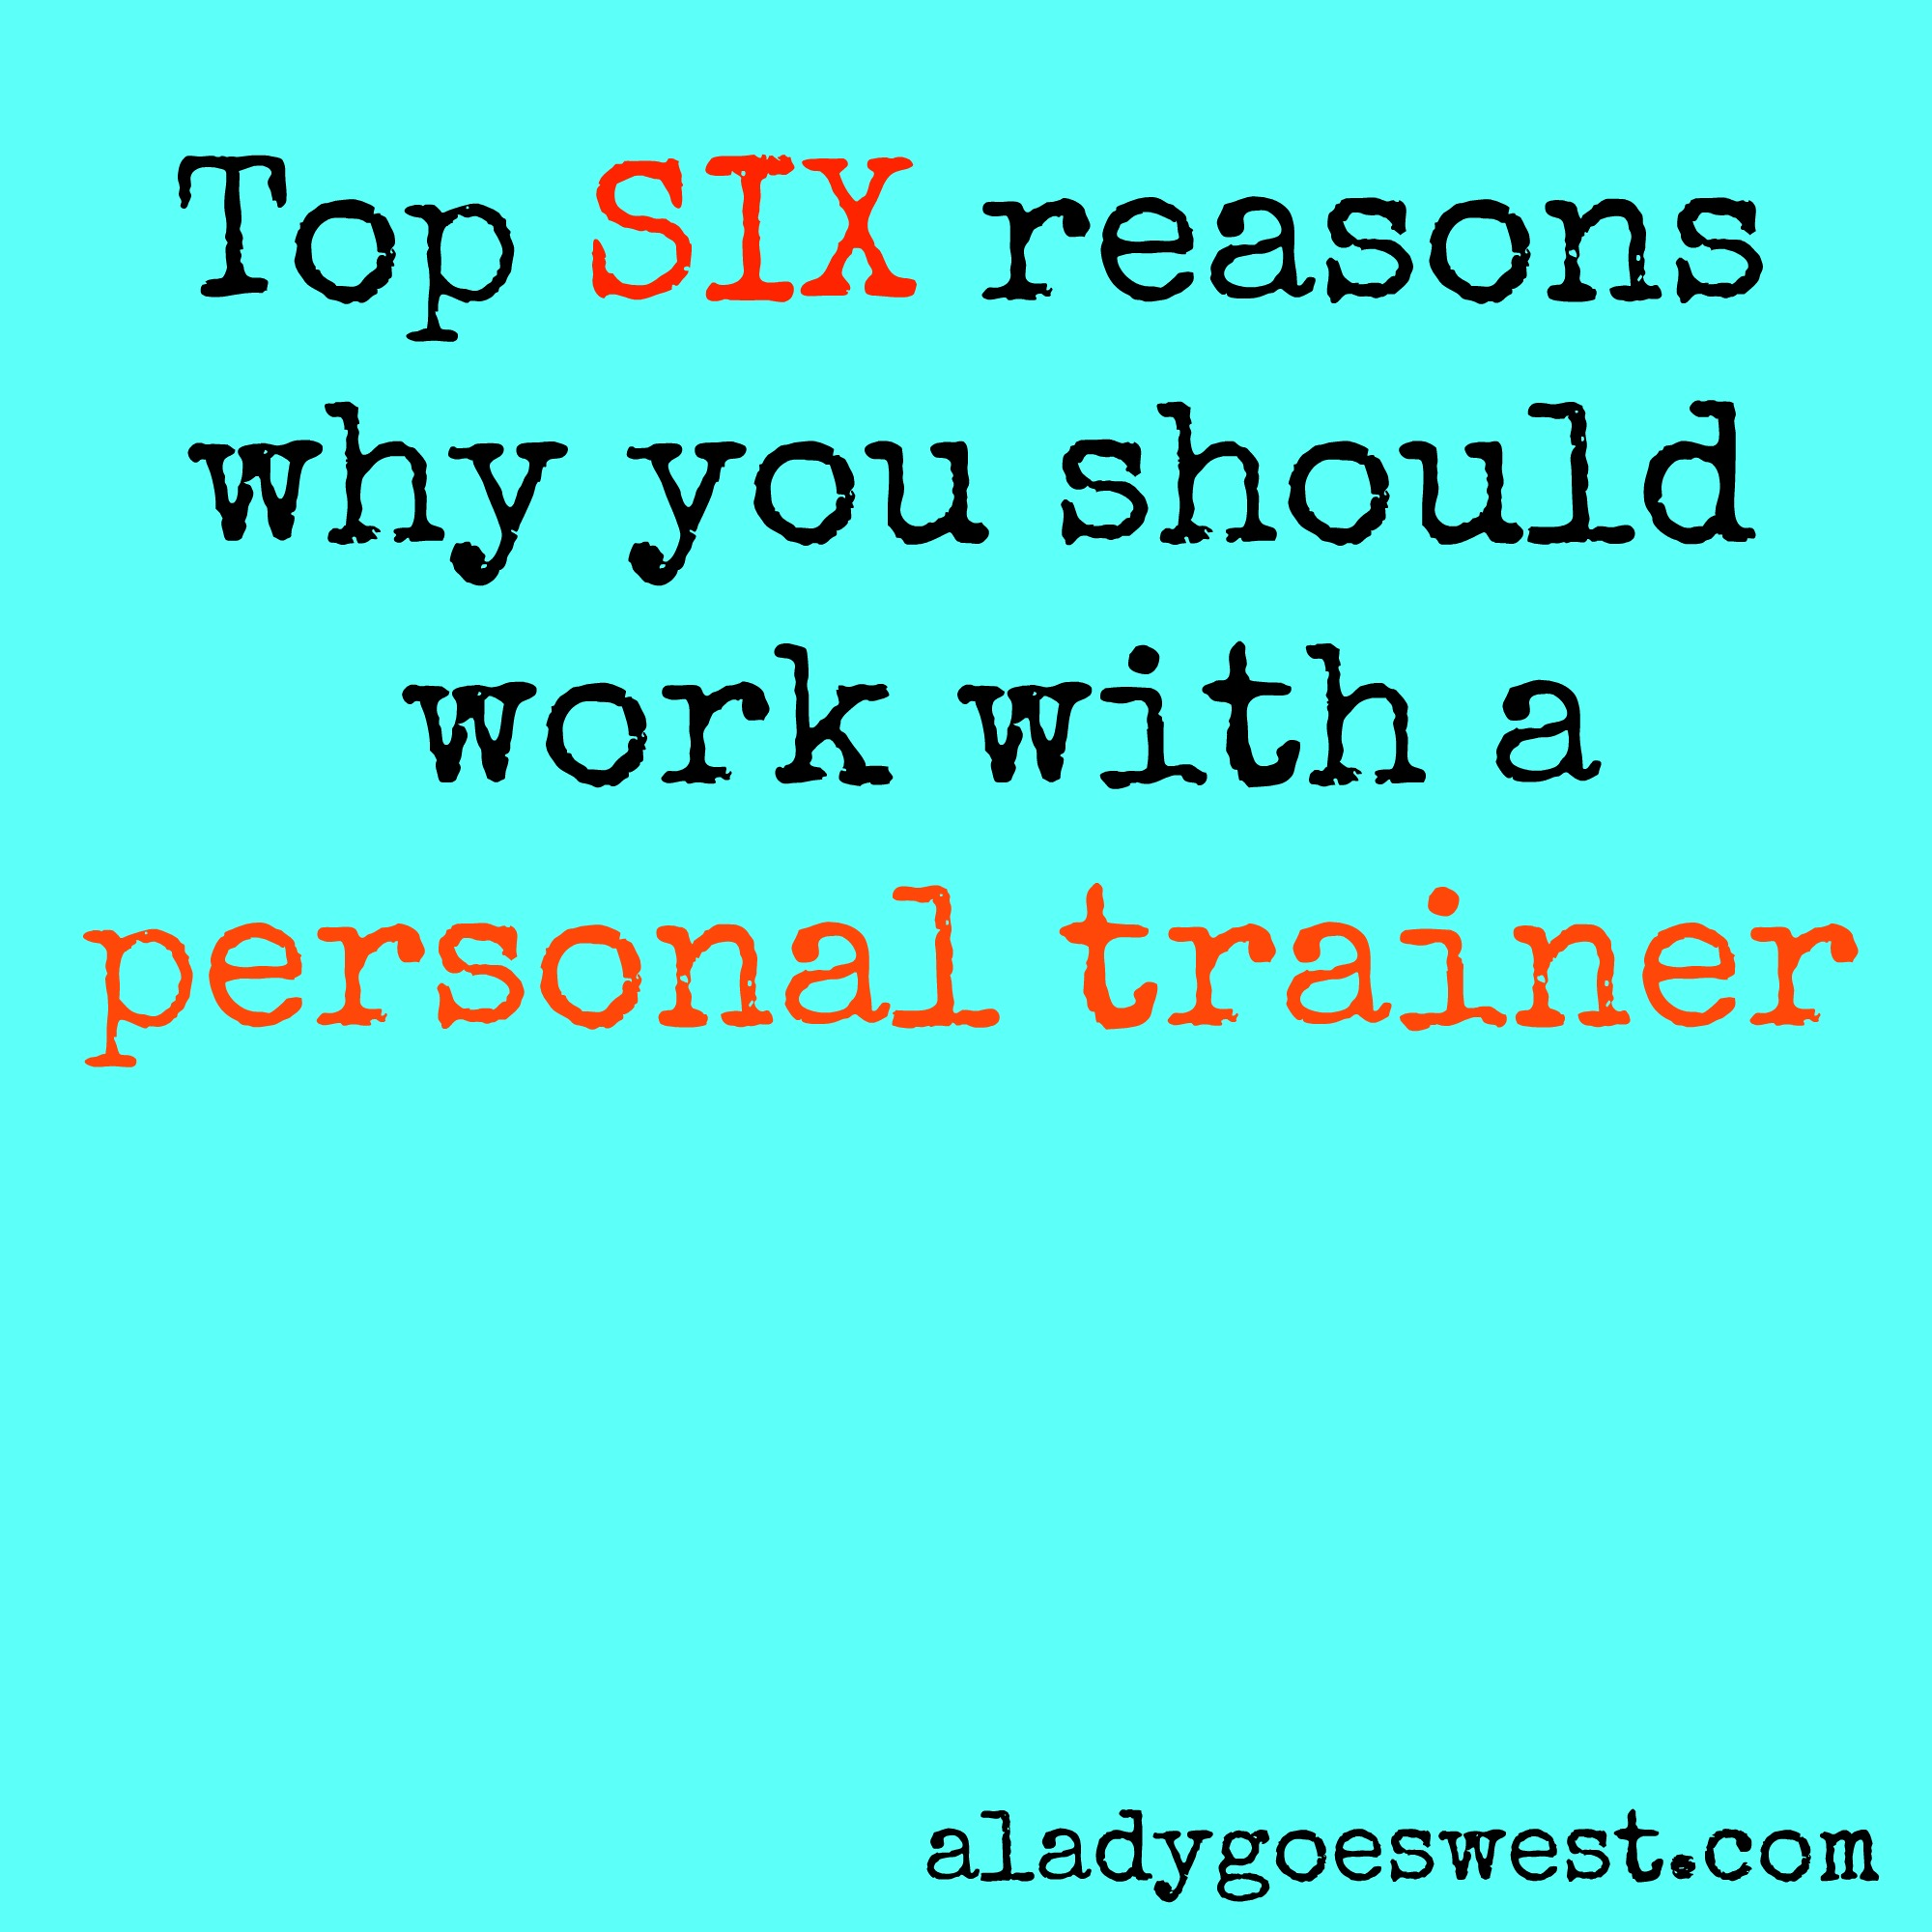 Six reasons to work with a personal trainer